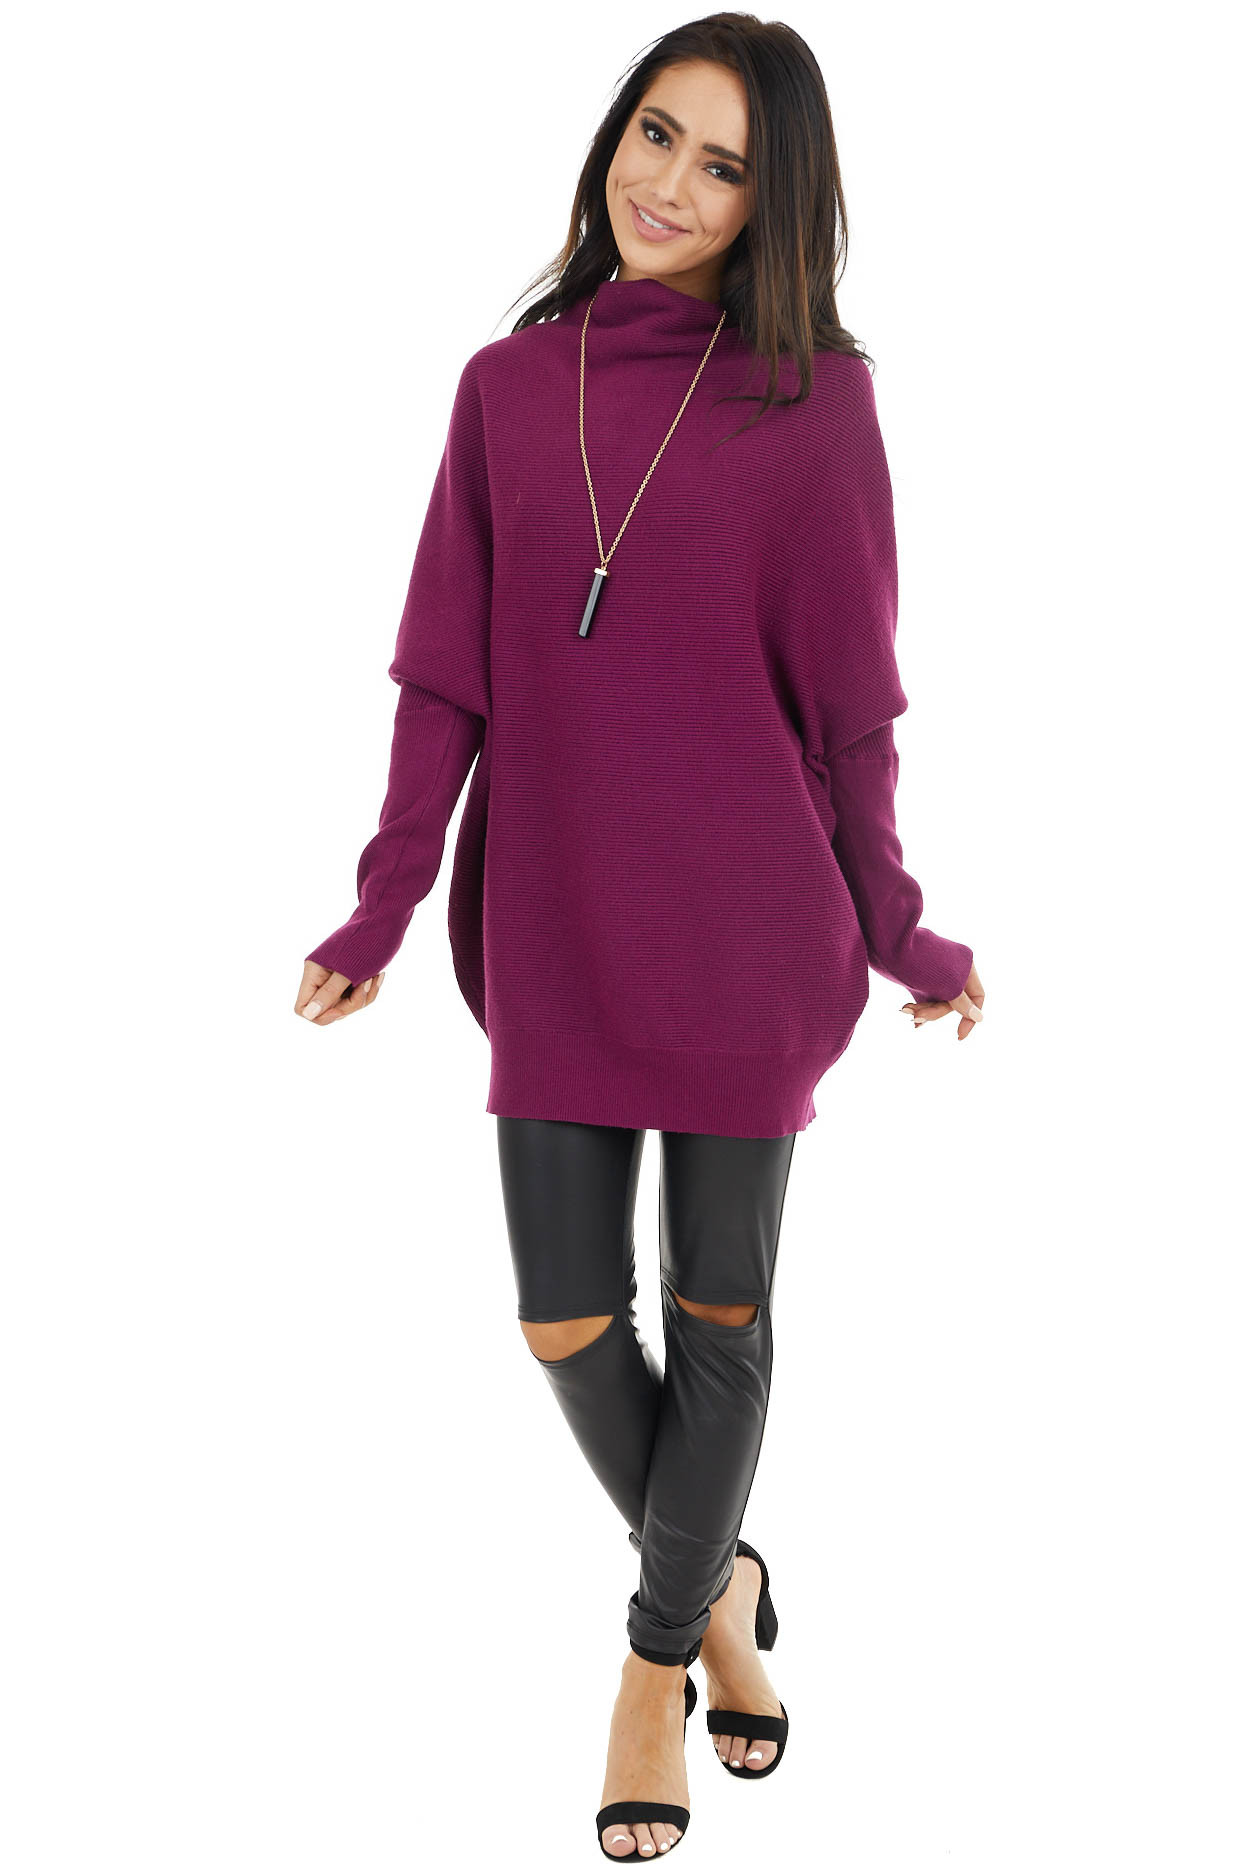 Rich Plum Dolman Sleeve Tunic Sweater with High Neckline